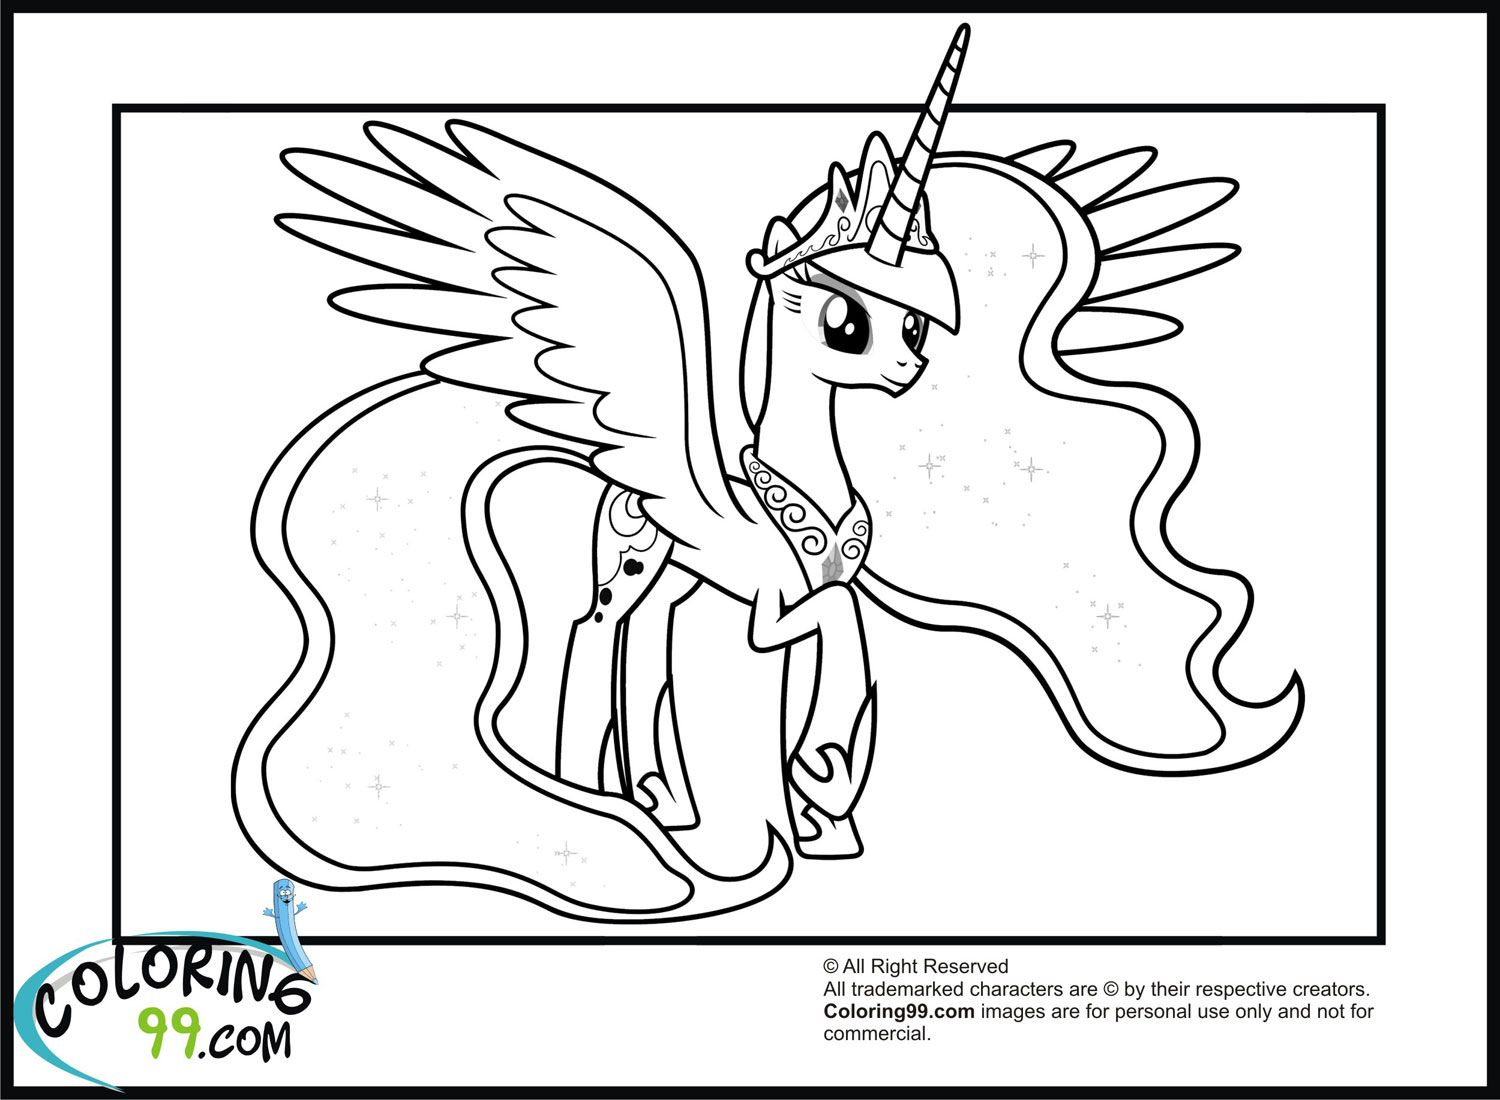 Little princess coloring pages - Princess Luna Princess Celestiaprincess Lunamy Little Ponycoloring Pagesprincessescoloring